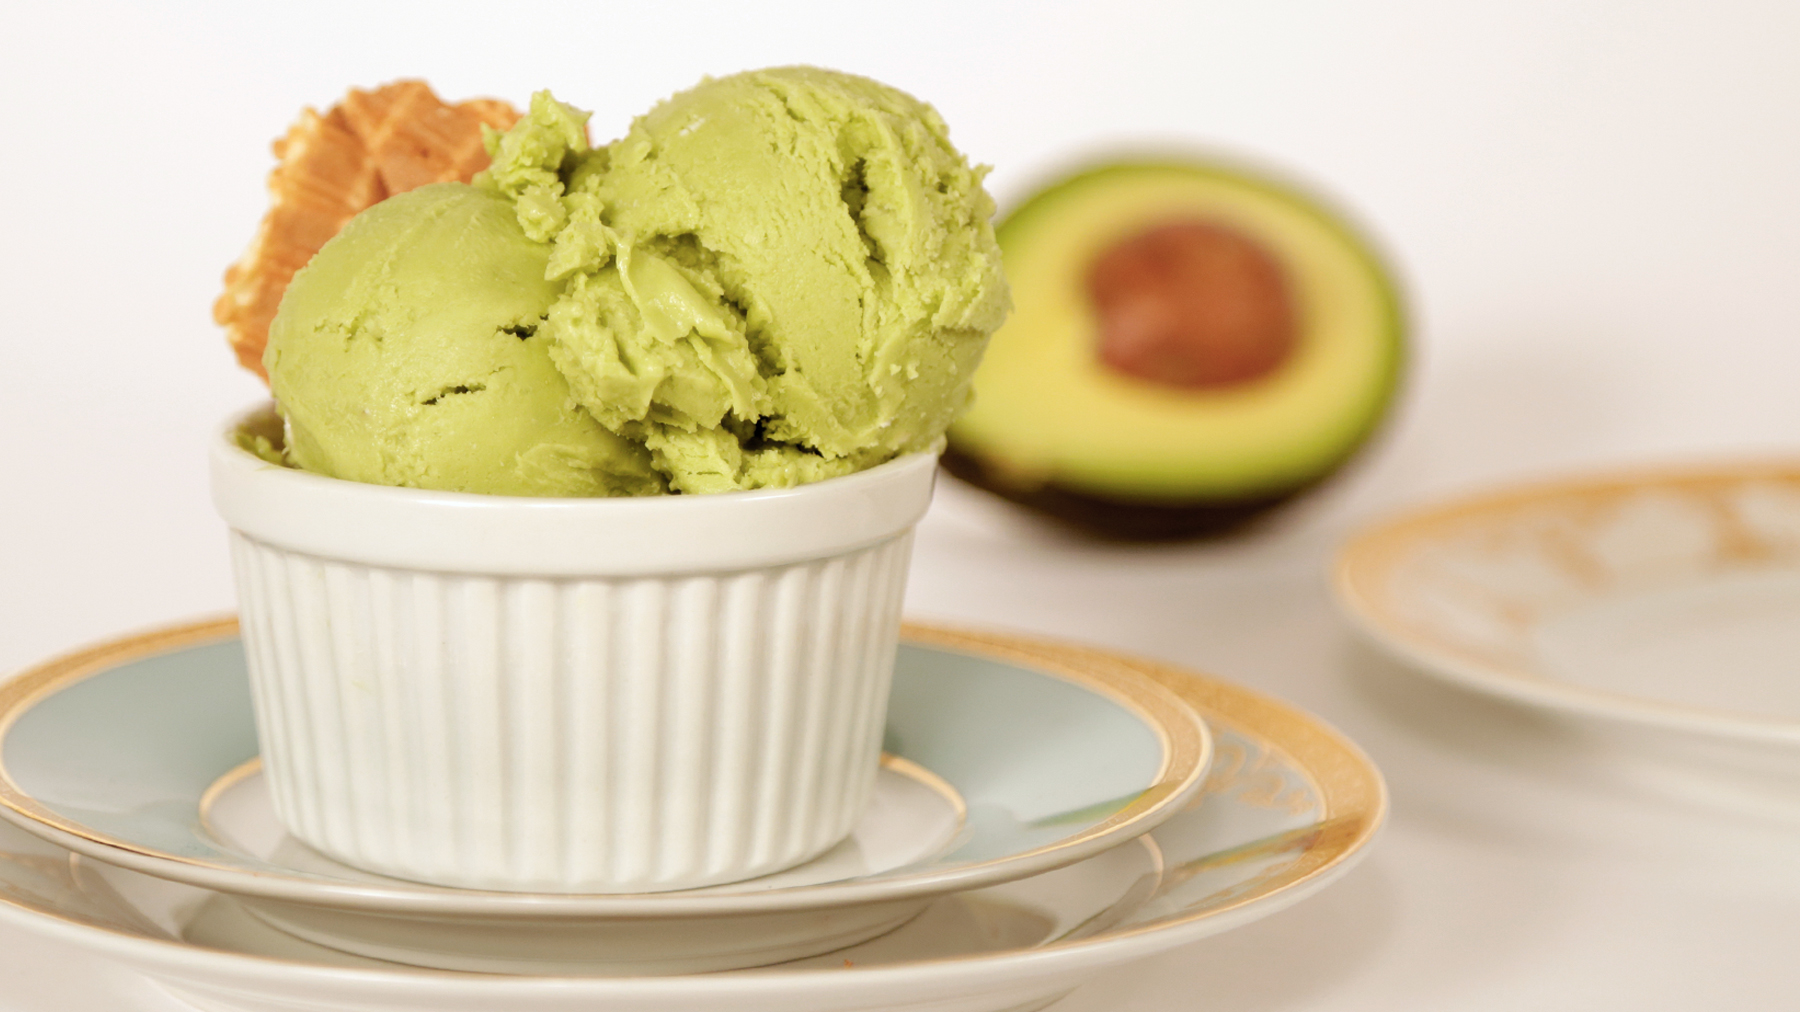 Avocados are also versatile, and can be used in so many different ...